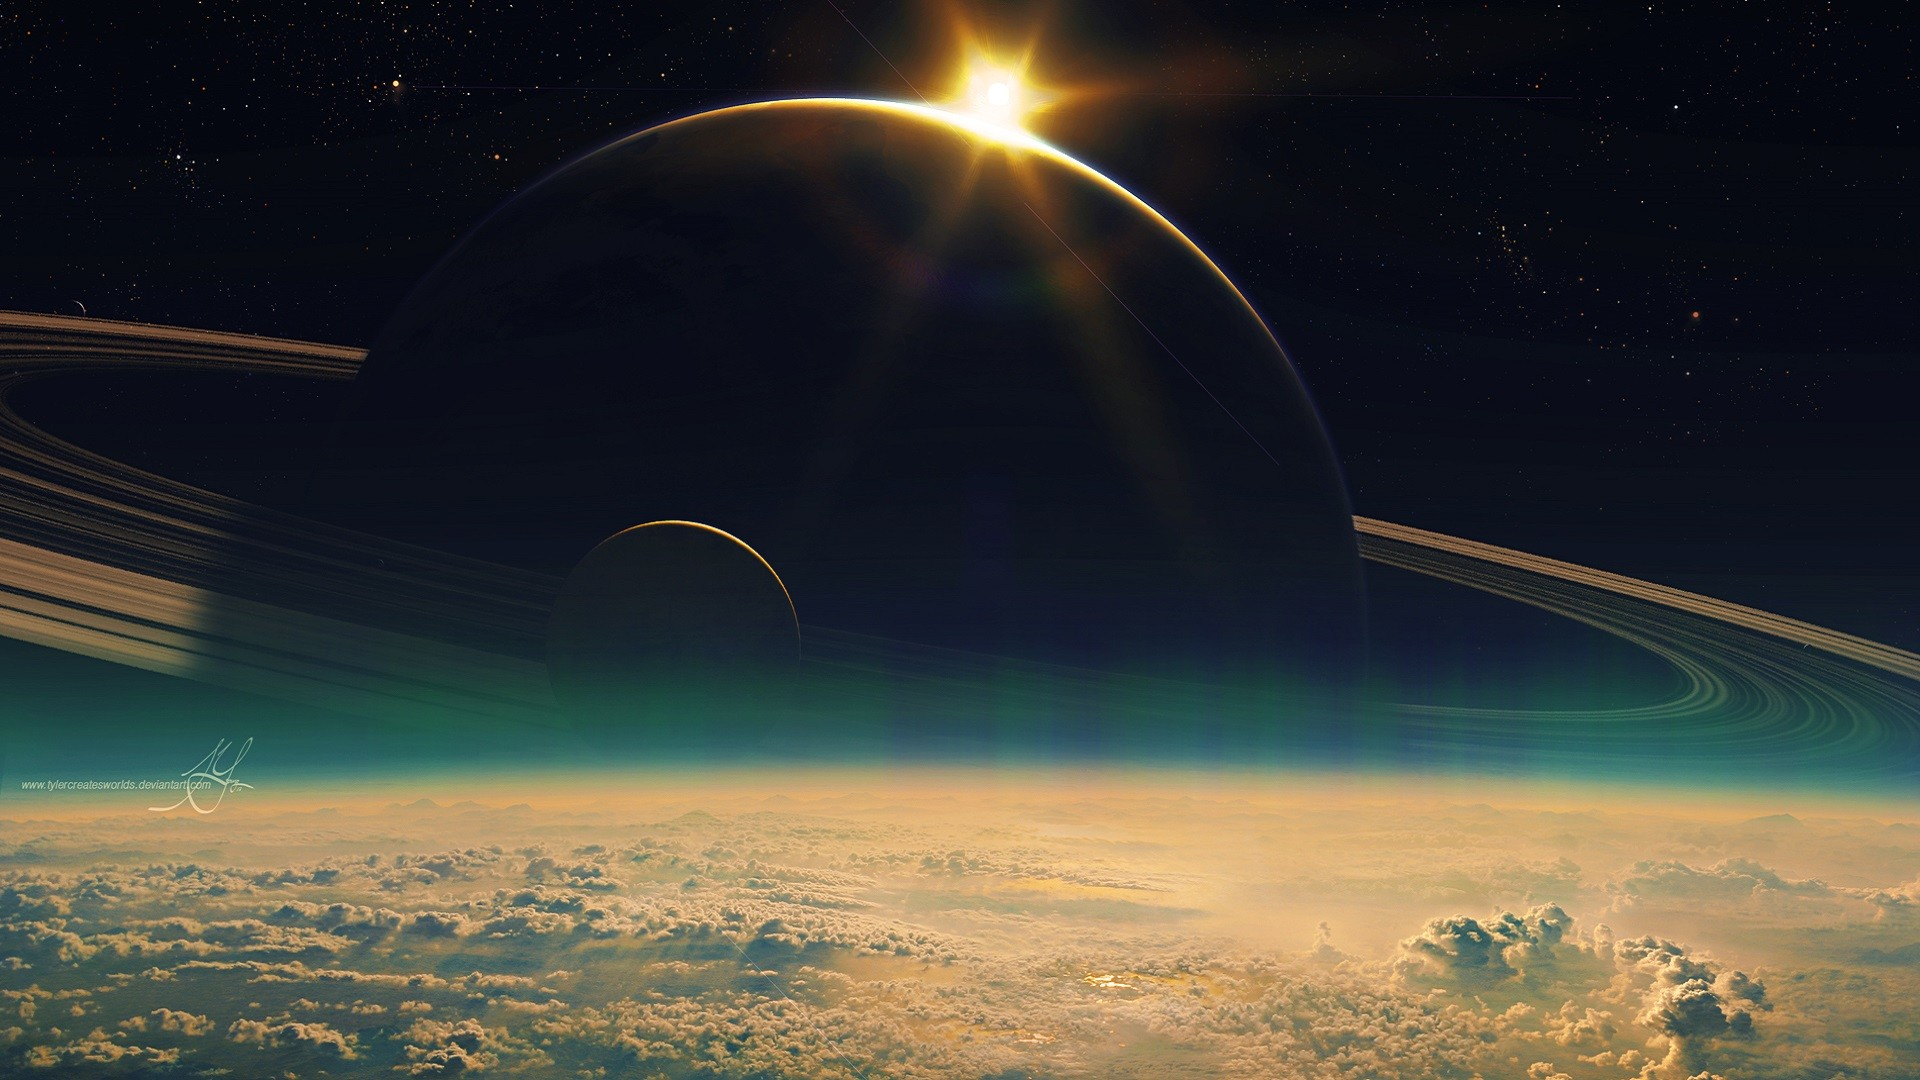 Space Hd Wallpapers 1080p Wallpapertag